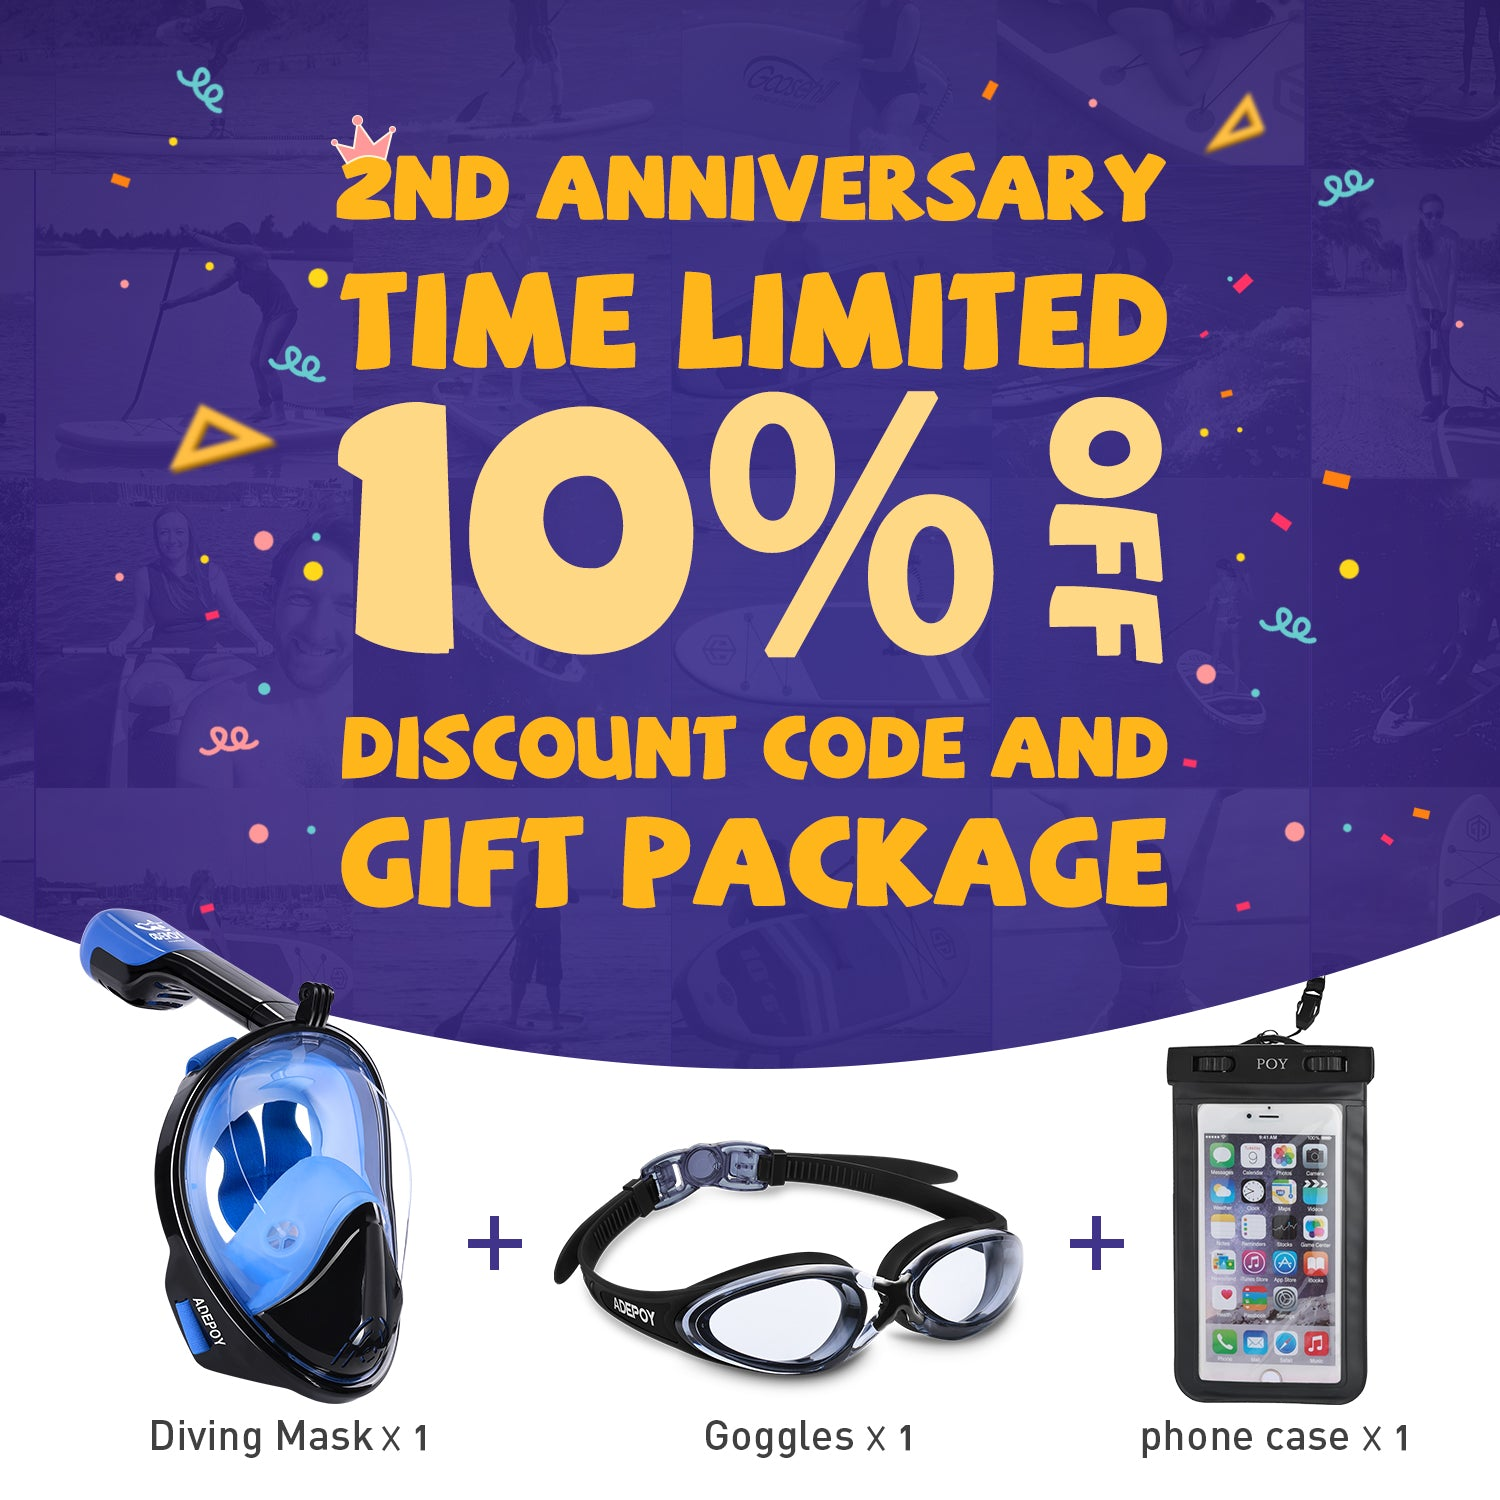 Anniversary package